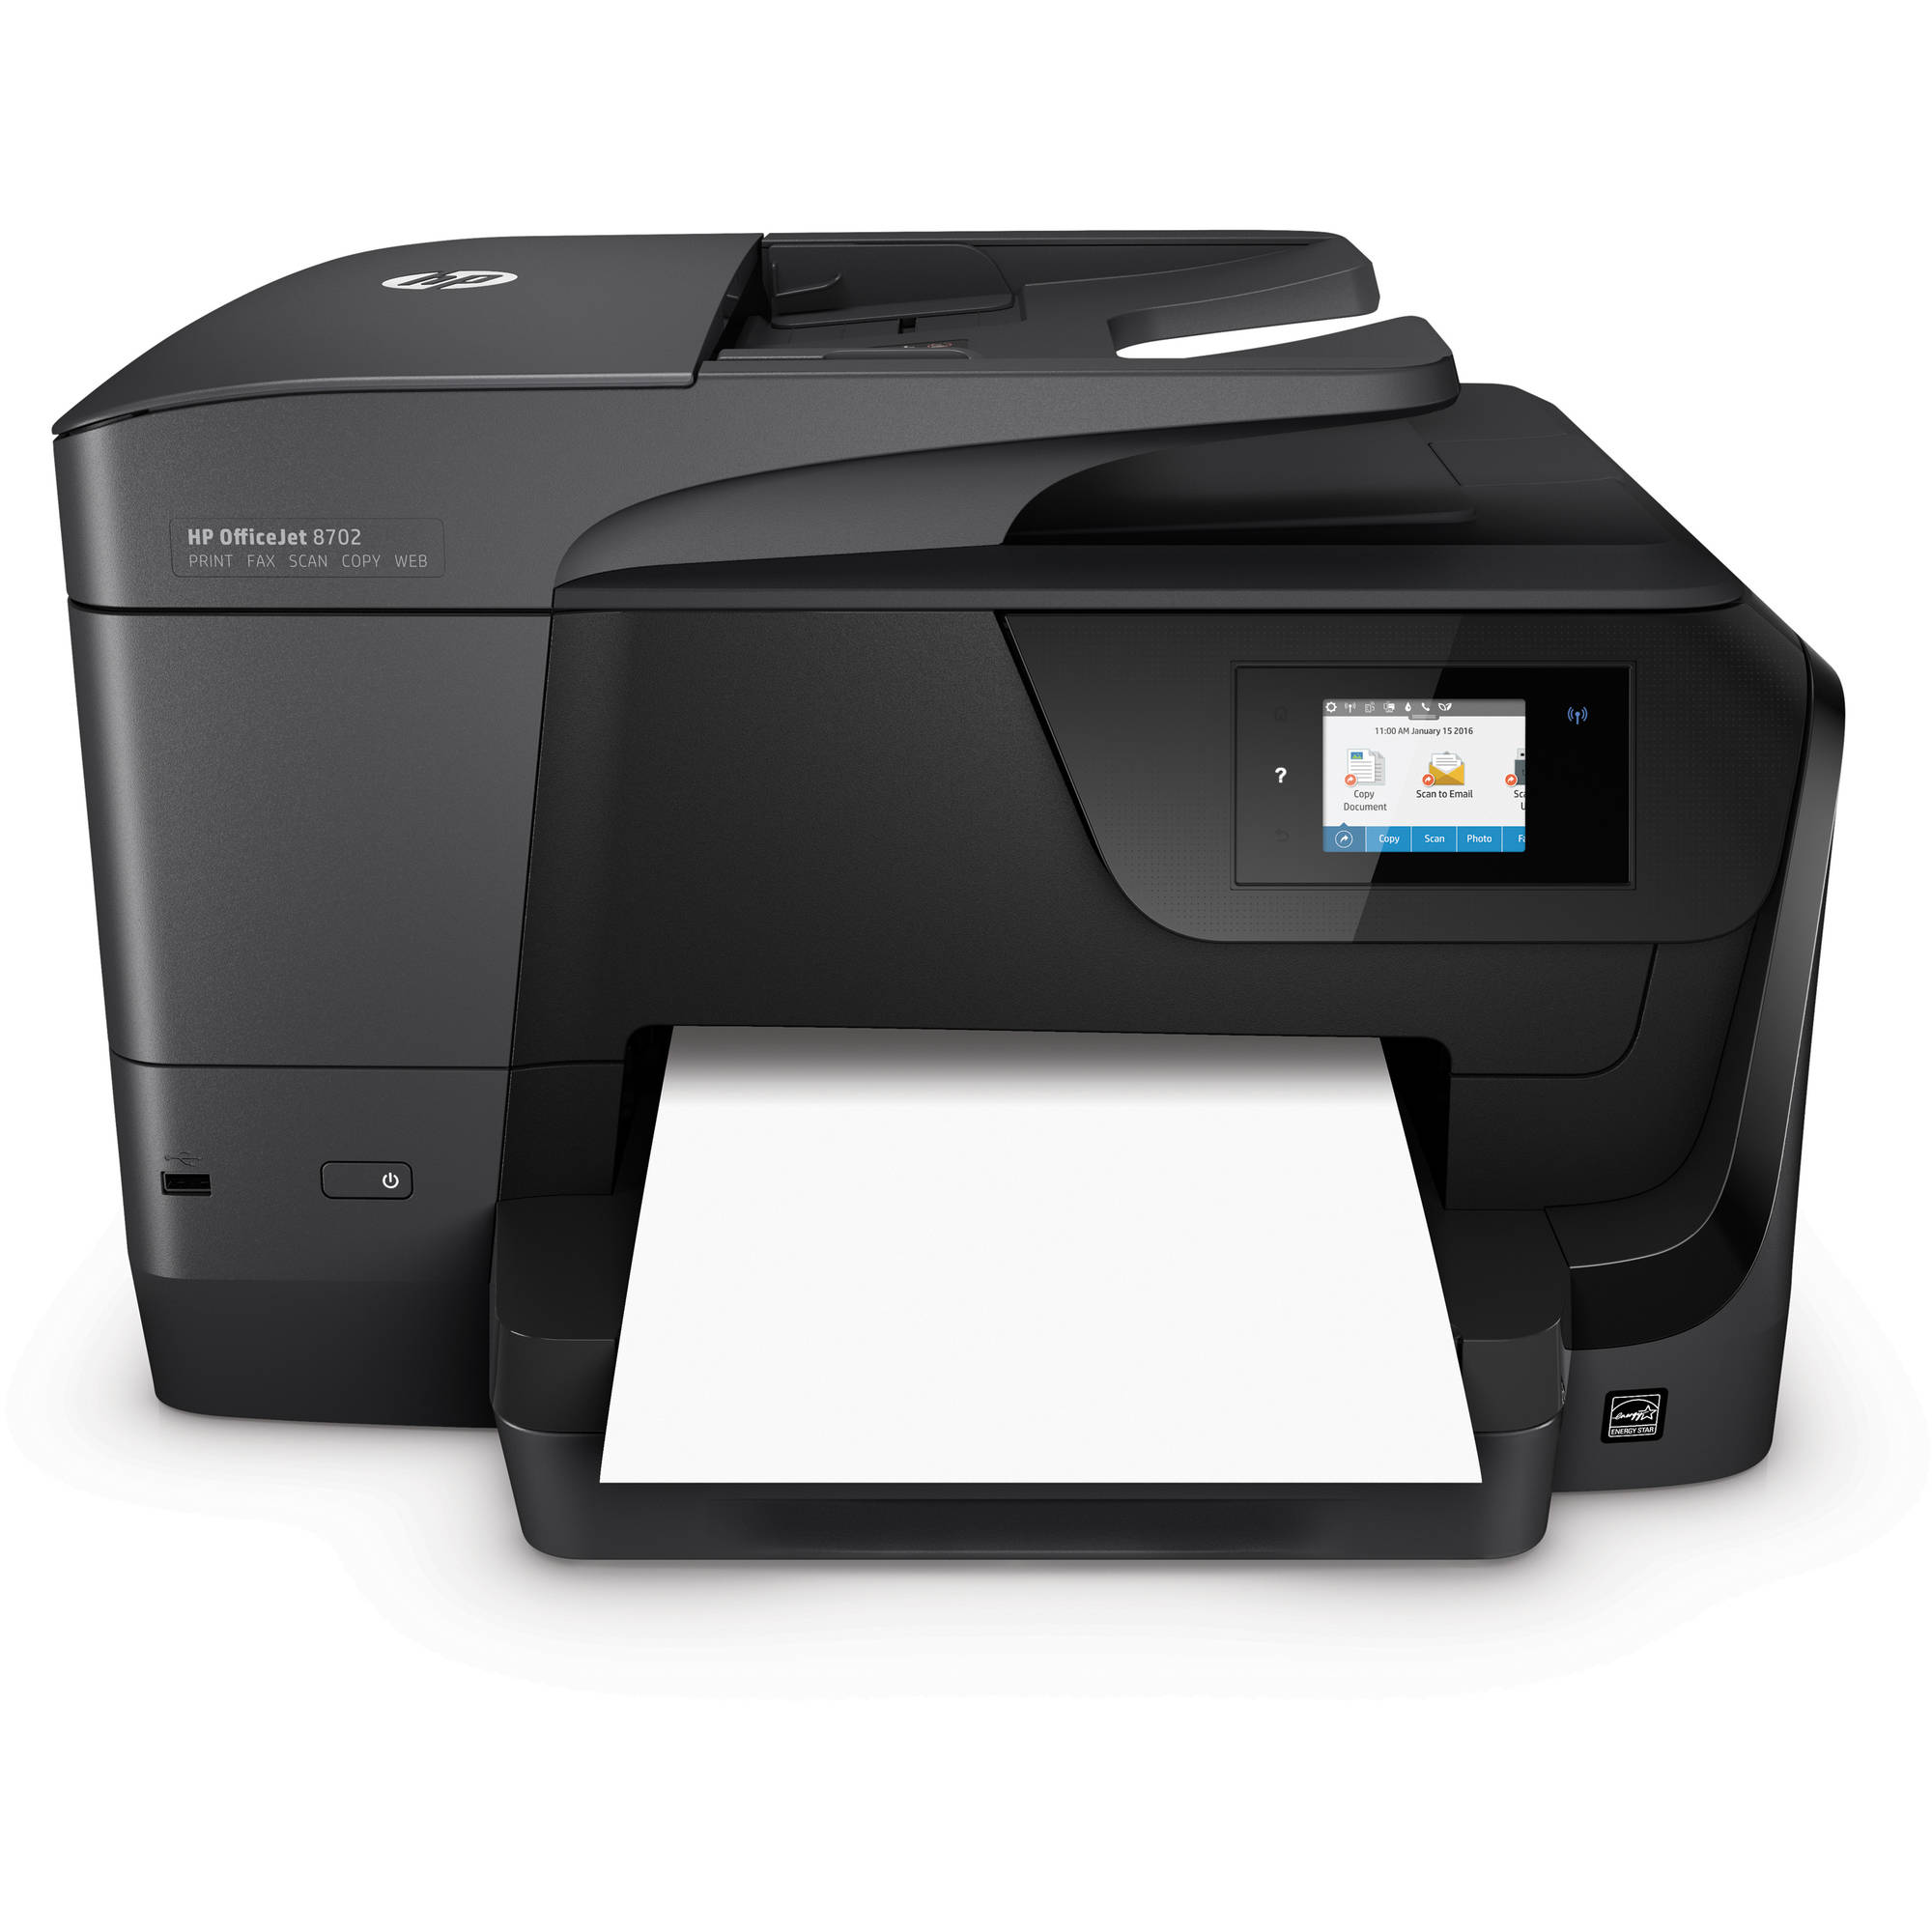 HP OfficeJet 8702 All-in-One Multifunction Printer/Copier/Scanner/Fax Machine